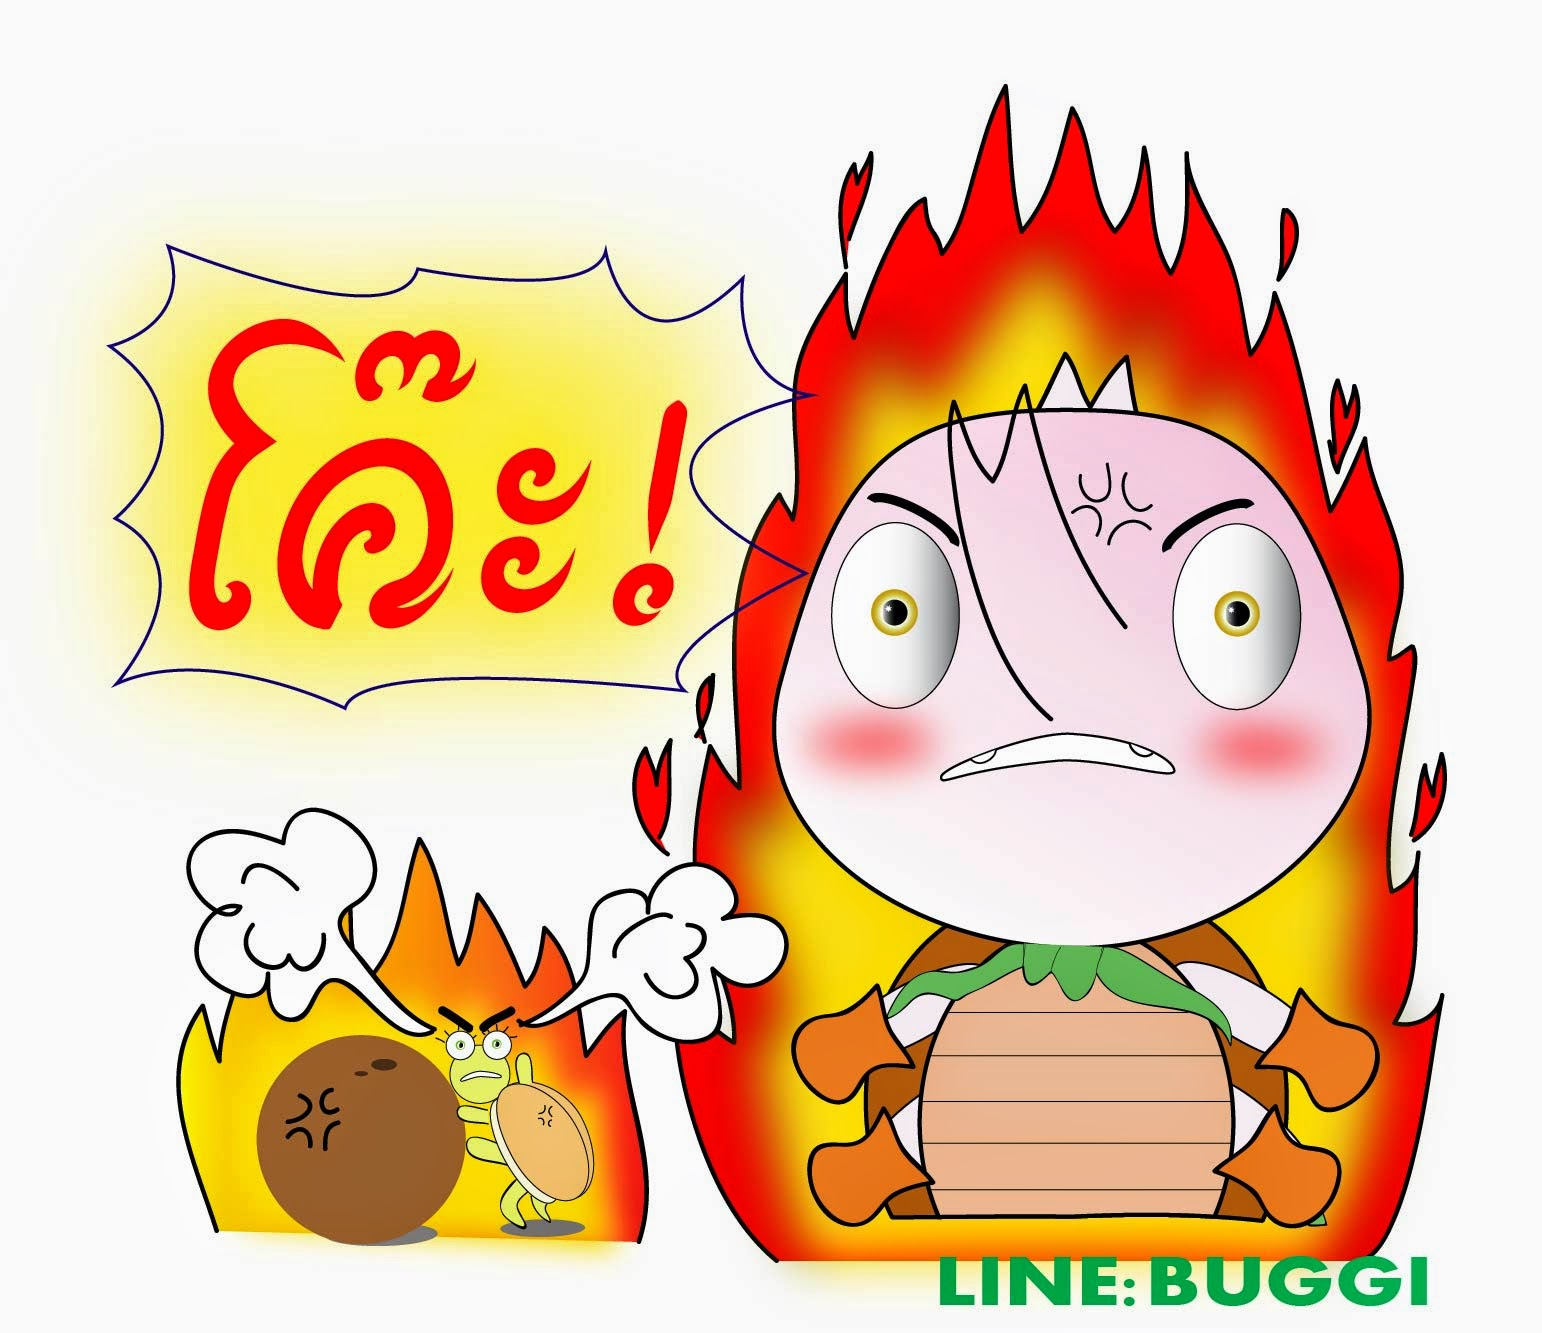 Buggi and Godji Gift Line Stickers